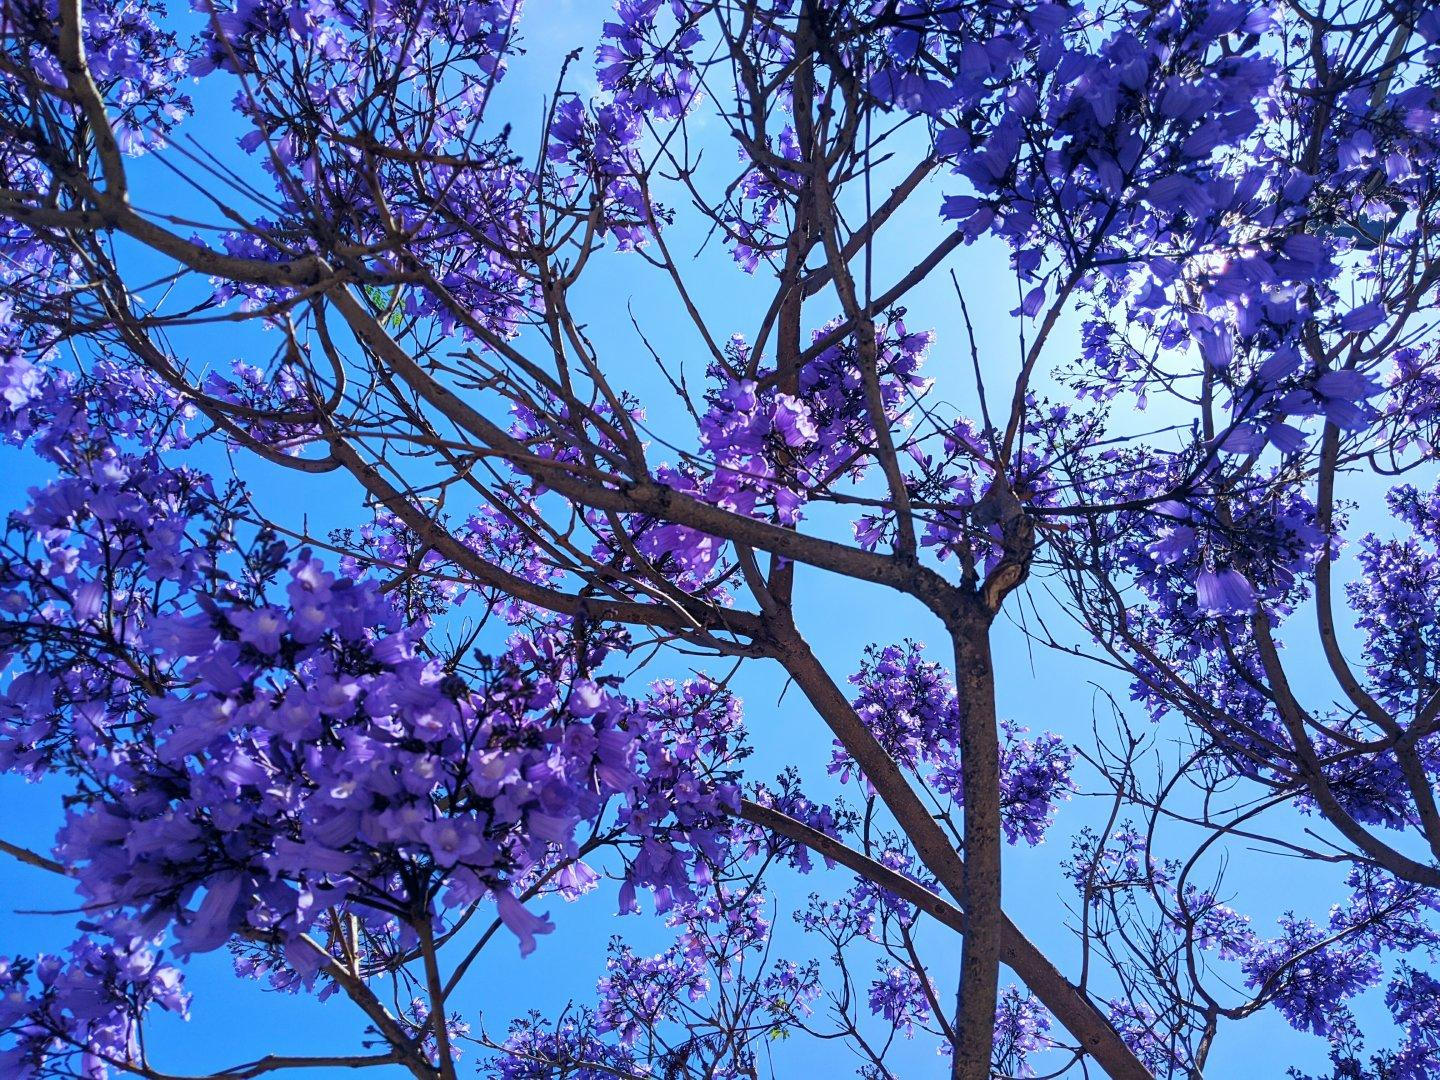 Jacaranda tree in bloom. #spring